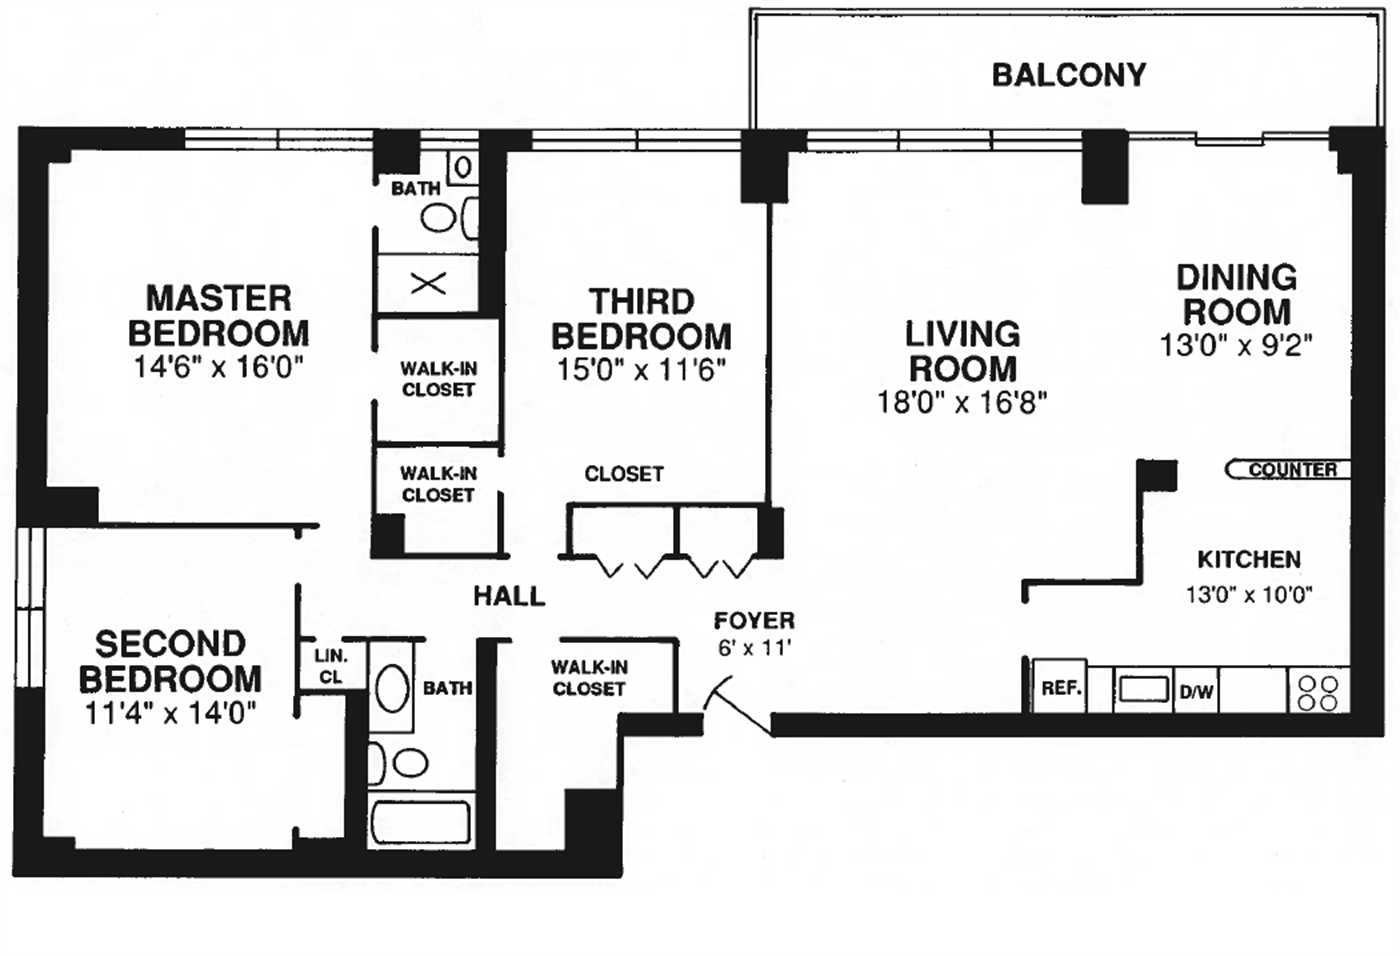 20 unique free floor plan templates house plans 6351 for Floor plans online free